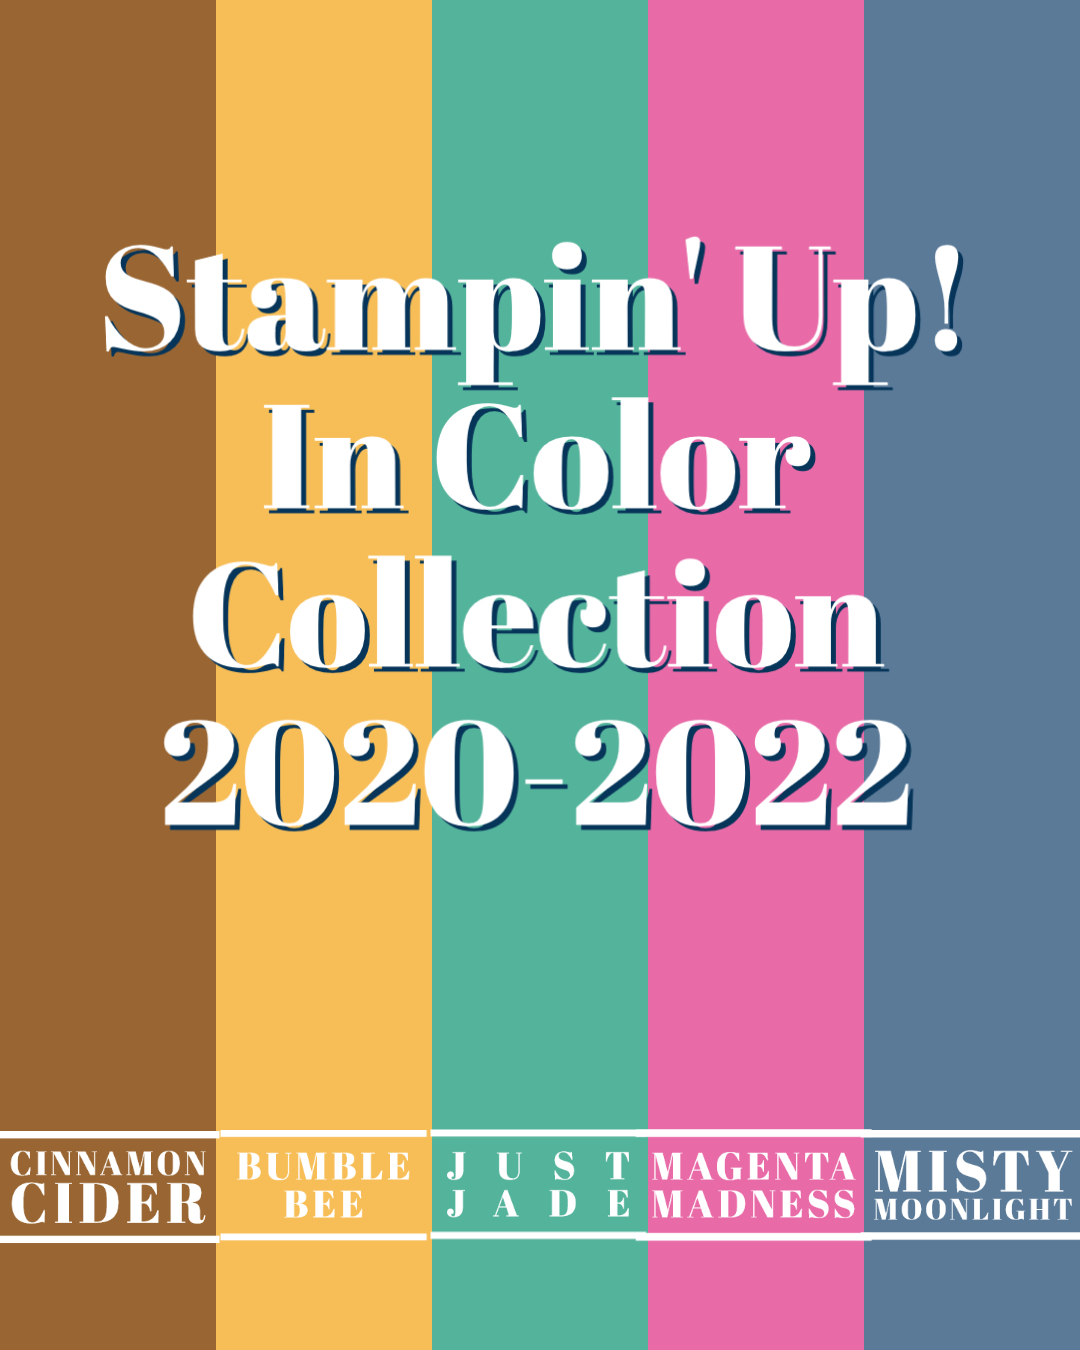 Stampin' Up! In Color Collection 2020-2022